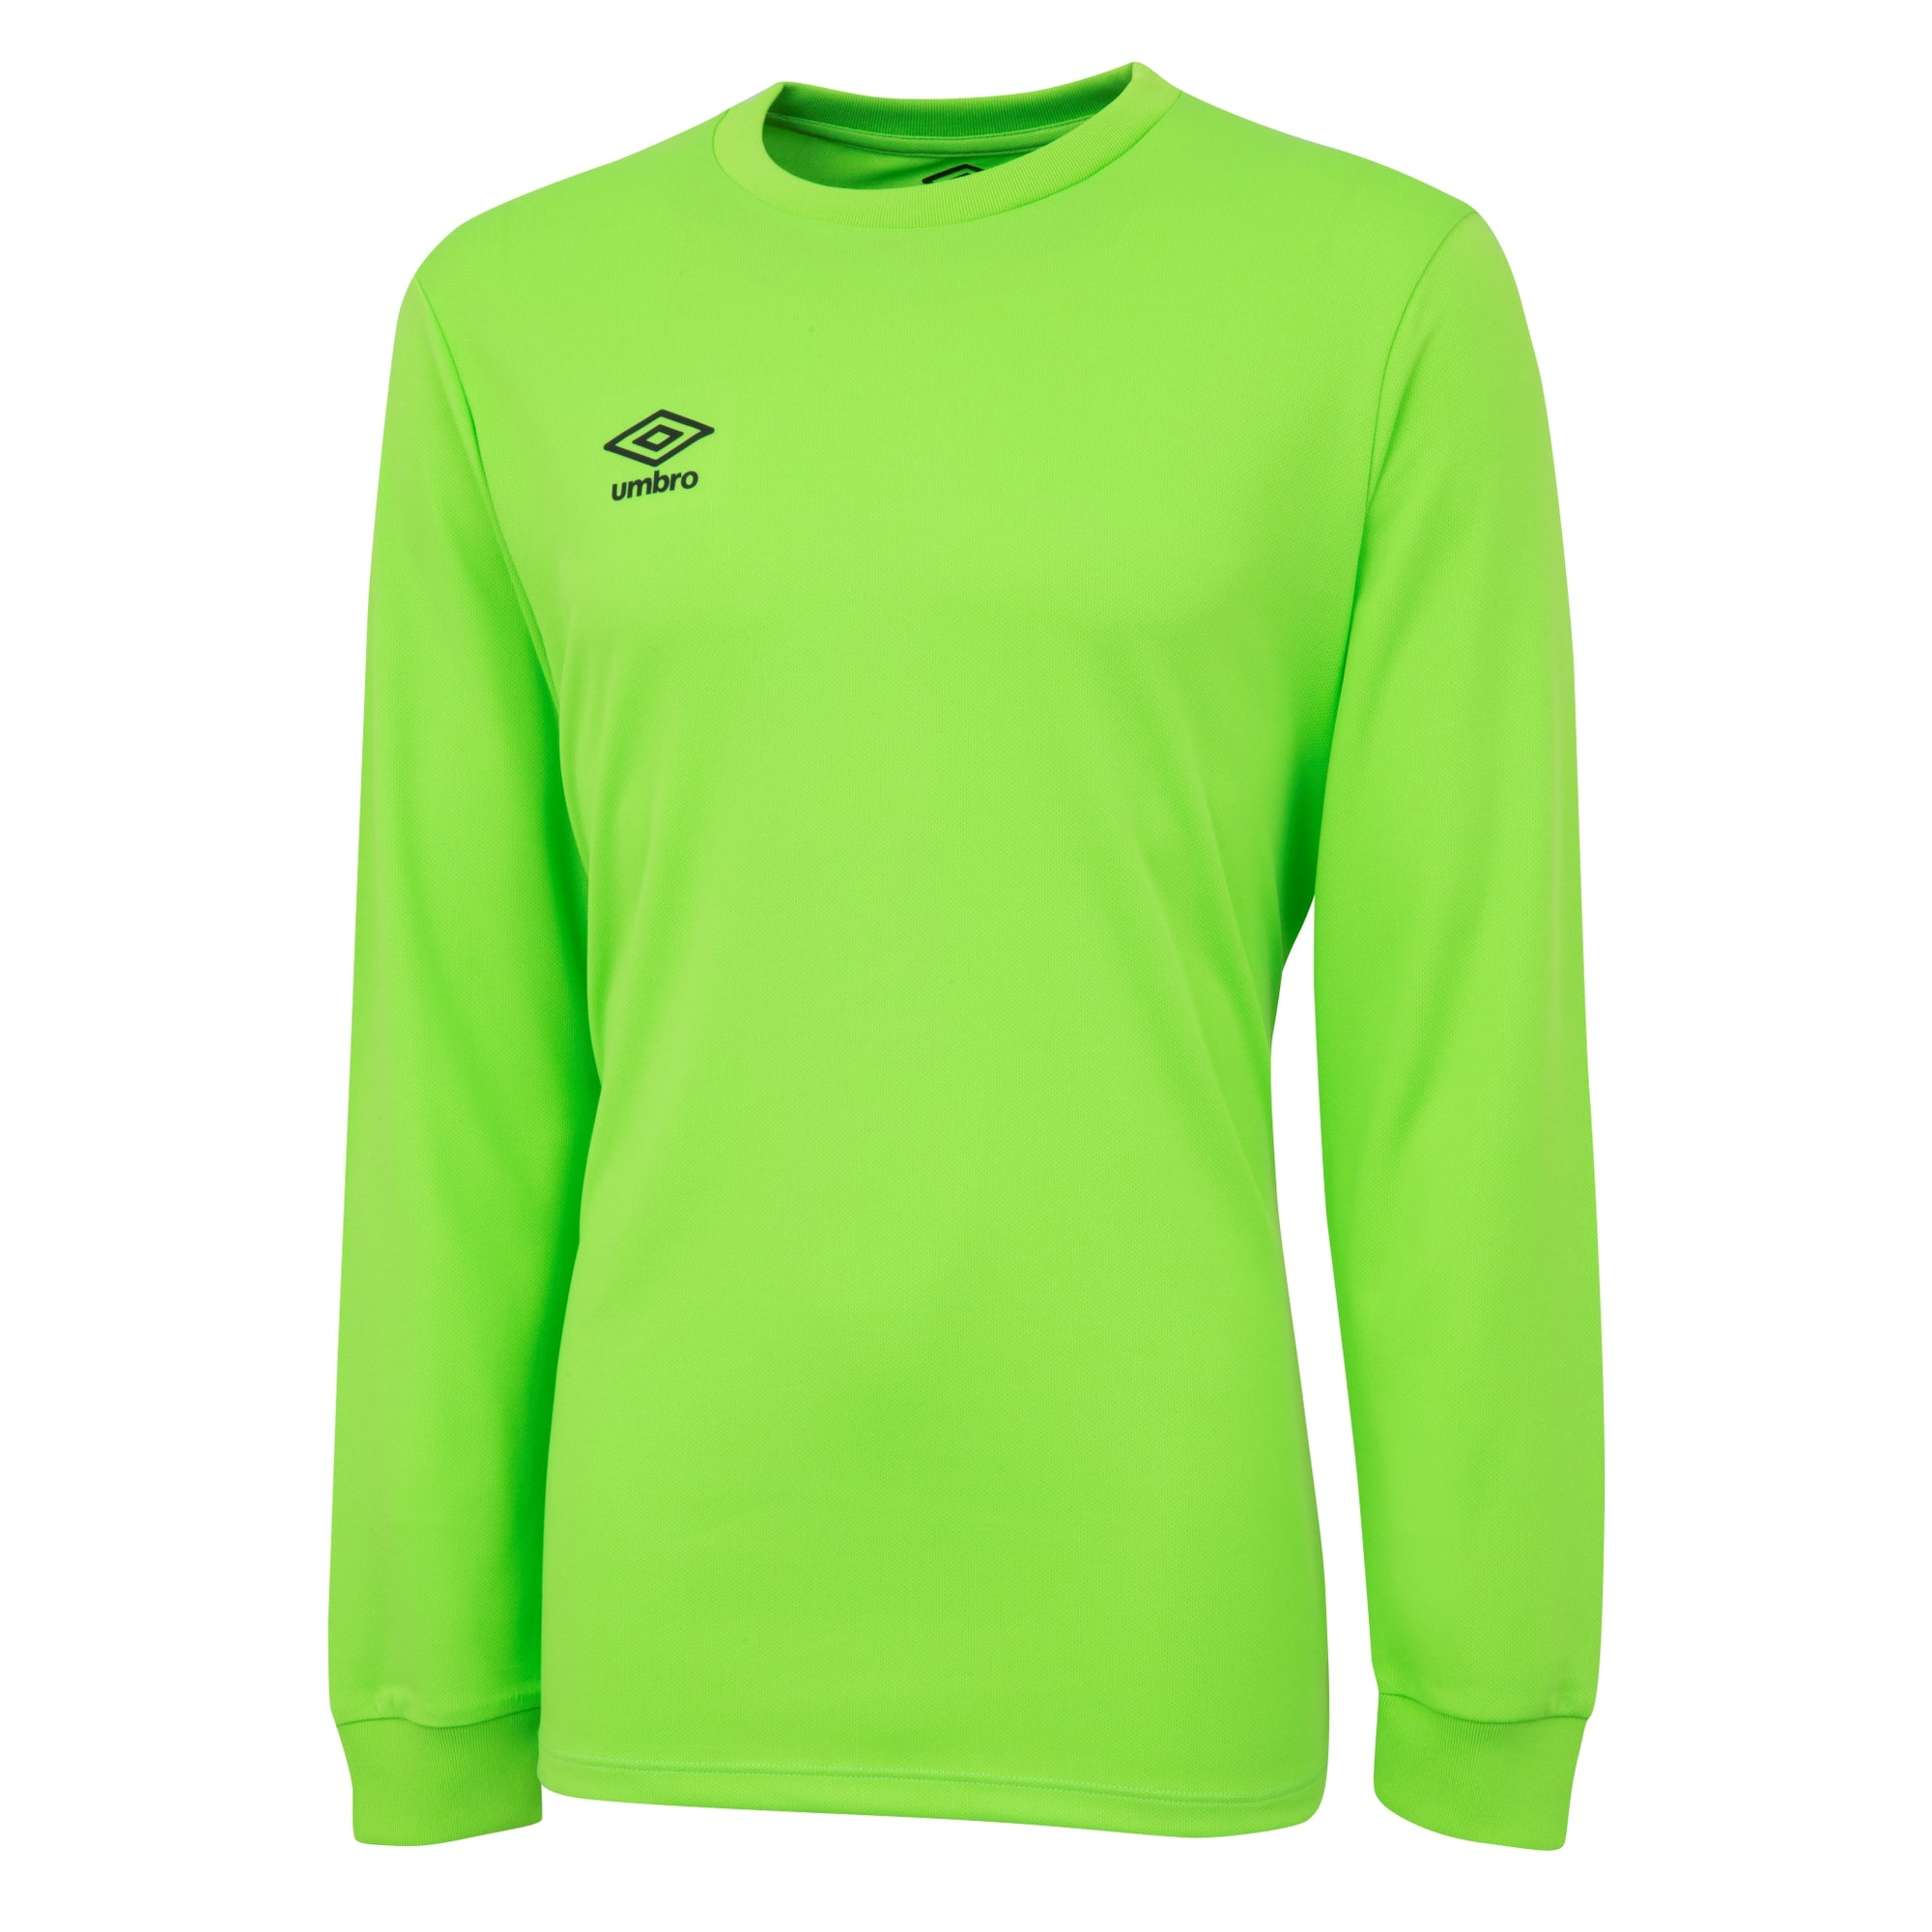 Umbro long sleeve club jersey in Gecko green with black printed Umbro logo